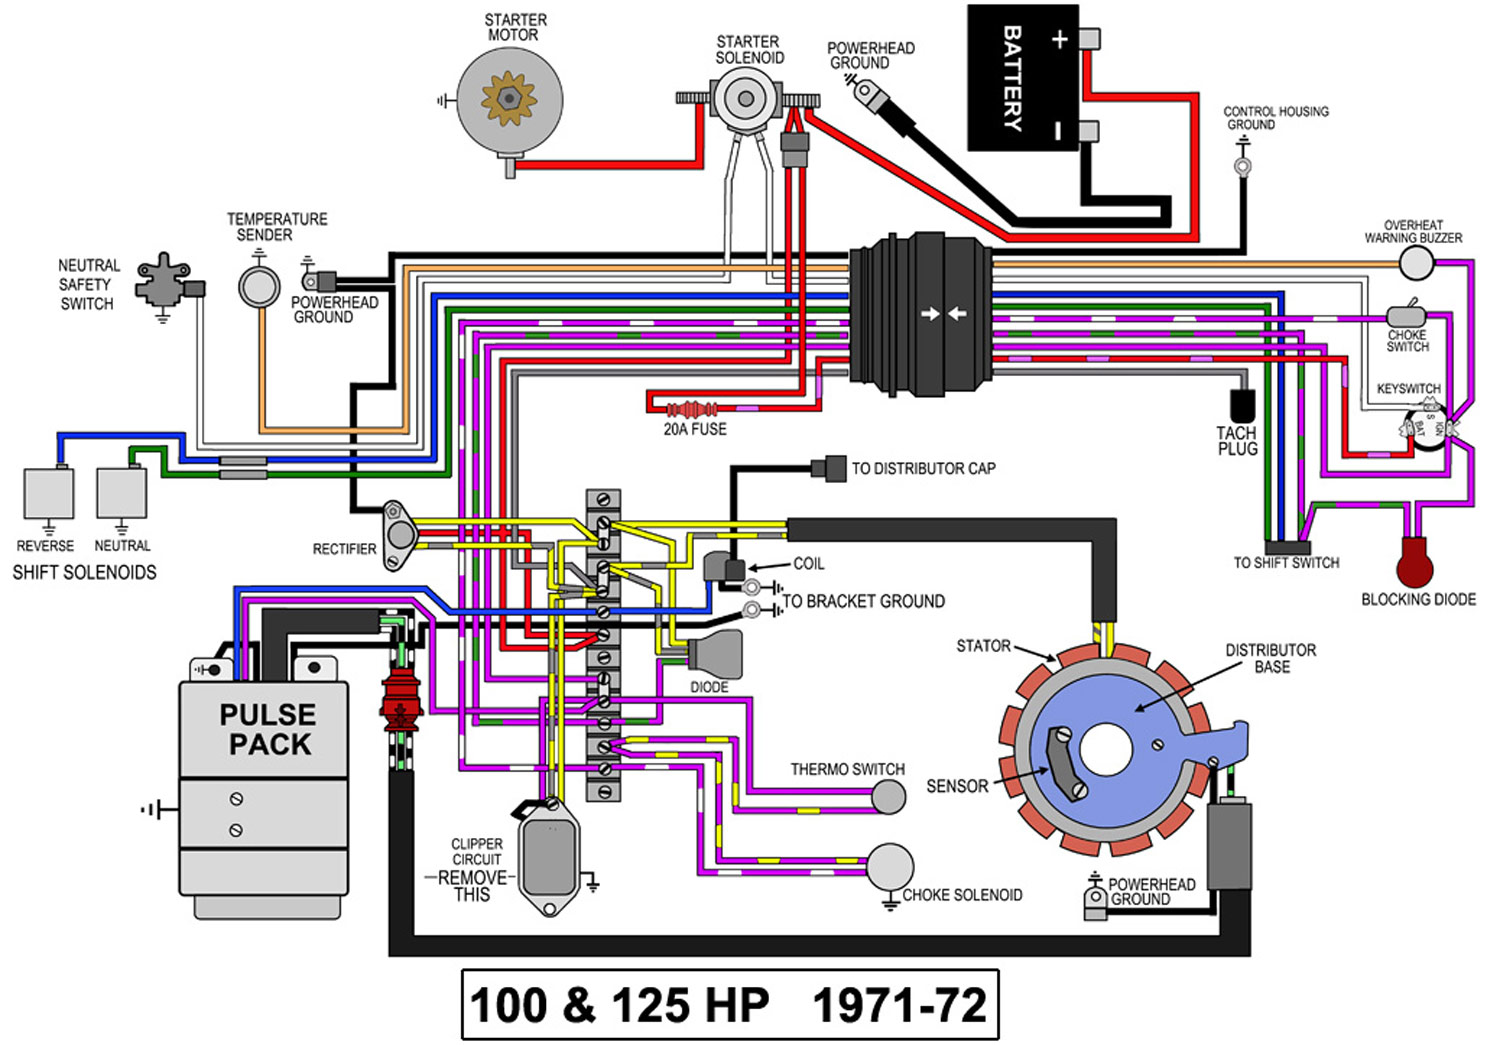 Omc Marine Msd Ignition Systems Wiring Diagrams. . Wiring Diagram on